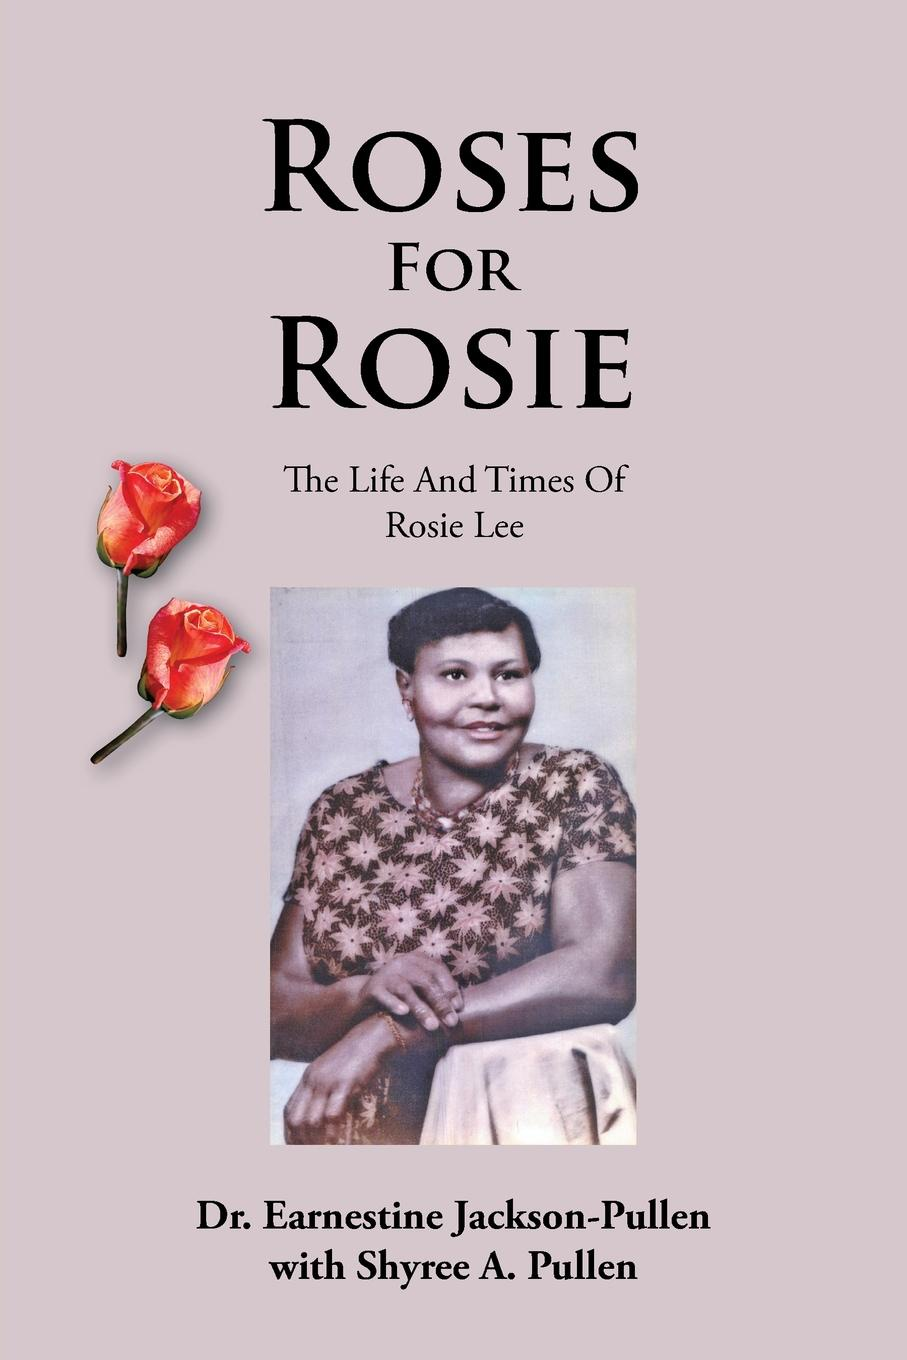 Dr Earnestine Jackson-Pullen Roses for Rosie. The Life and Times of Rosie Lee